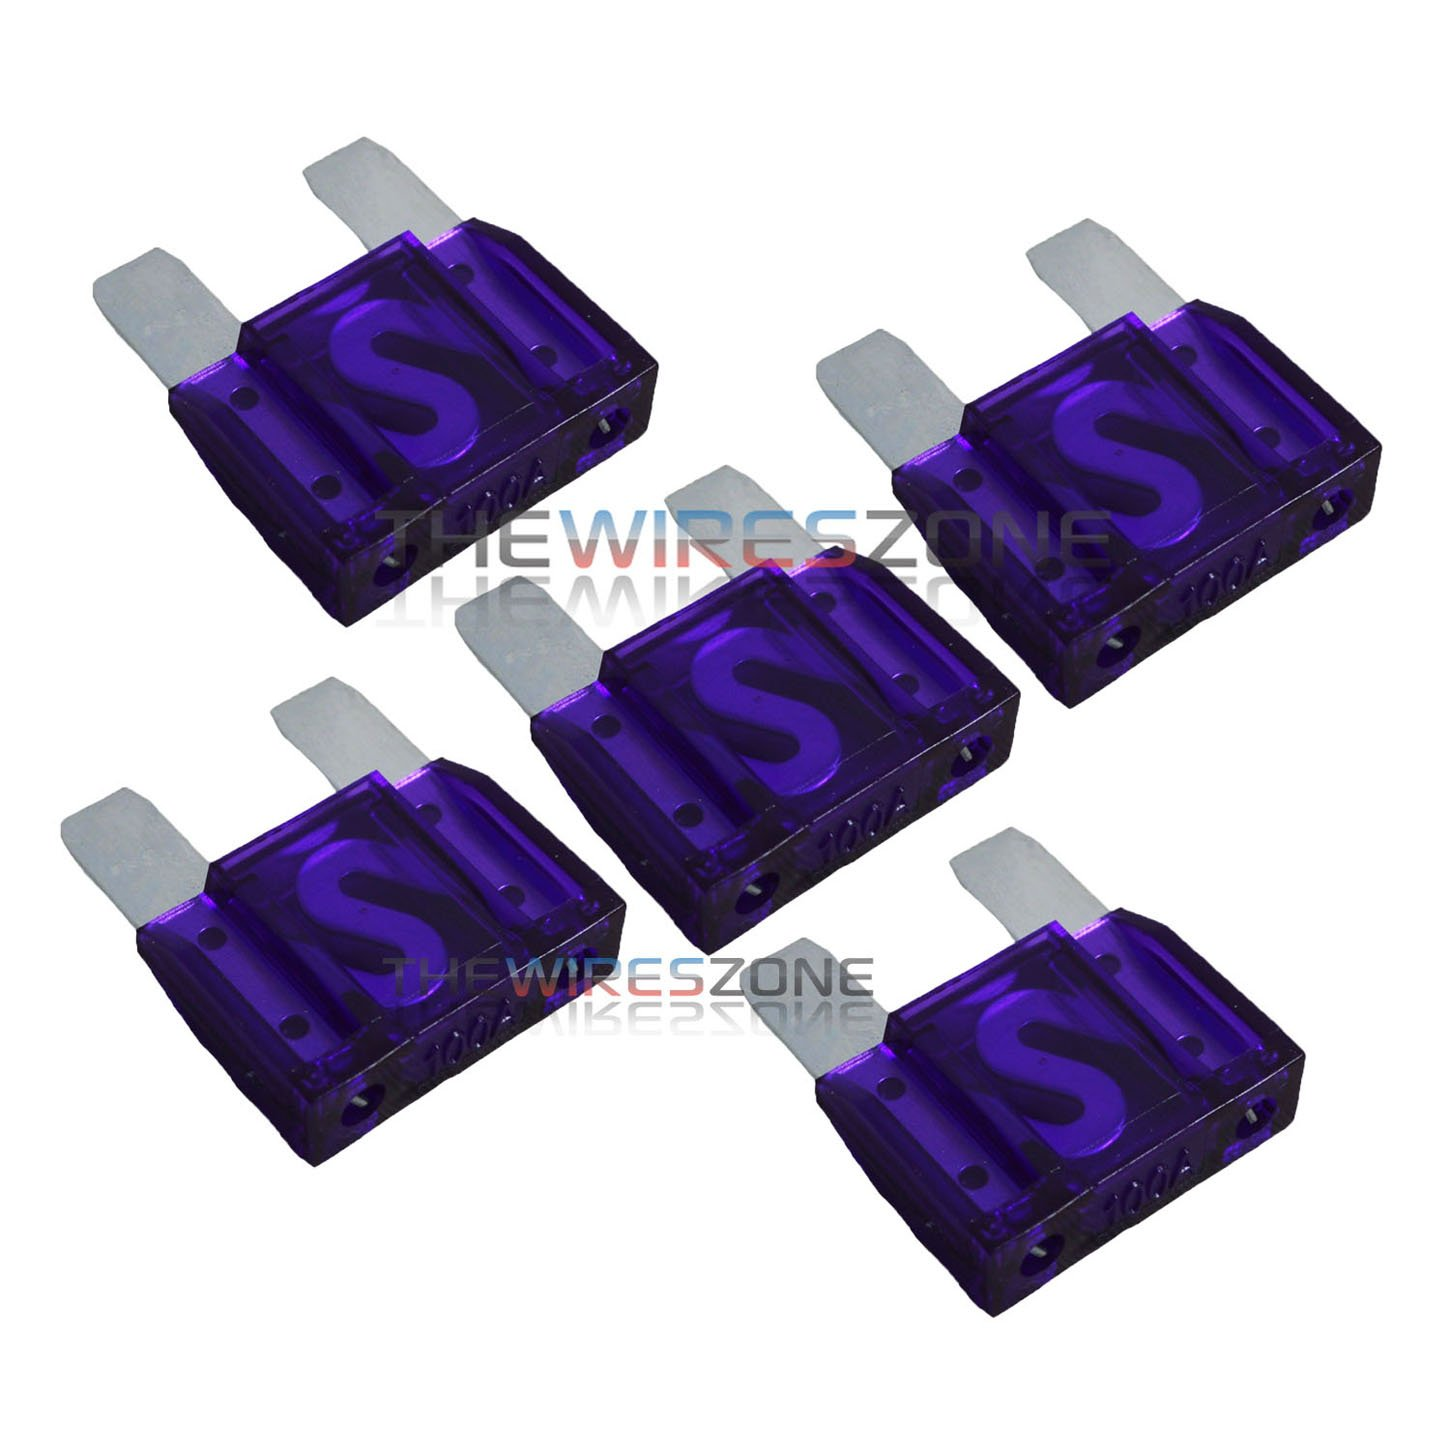 5 Pack of 100 Amp 100A Large Blade Style Audio Maxi Fuse for Car RV Boat Auto